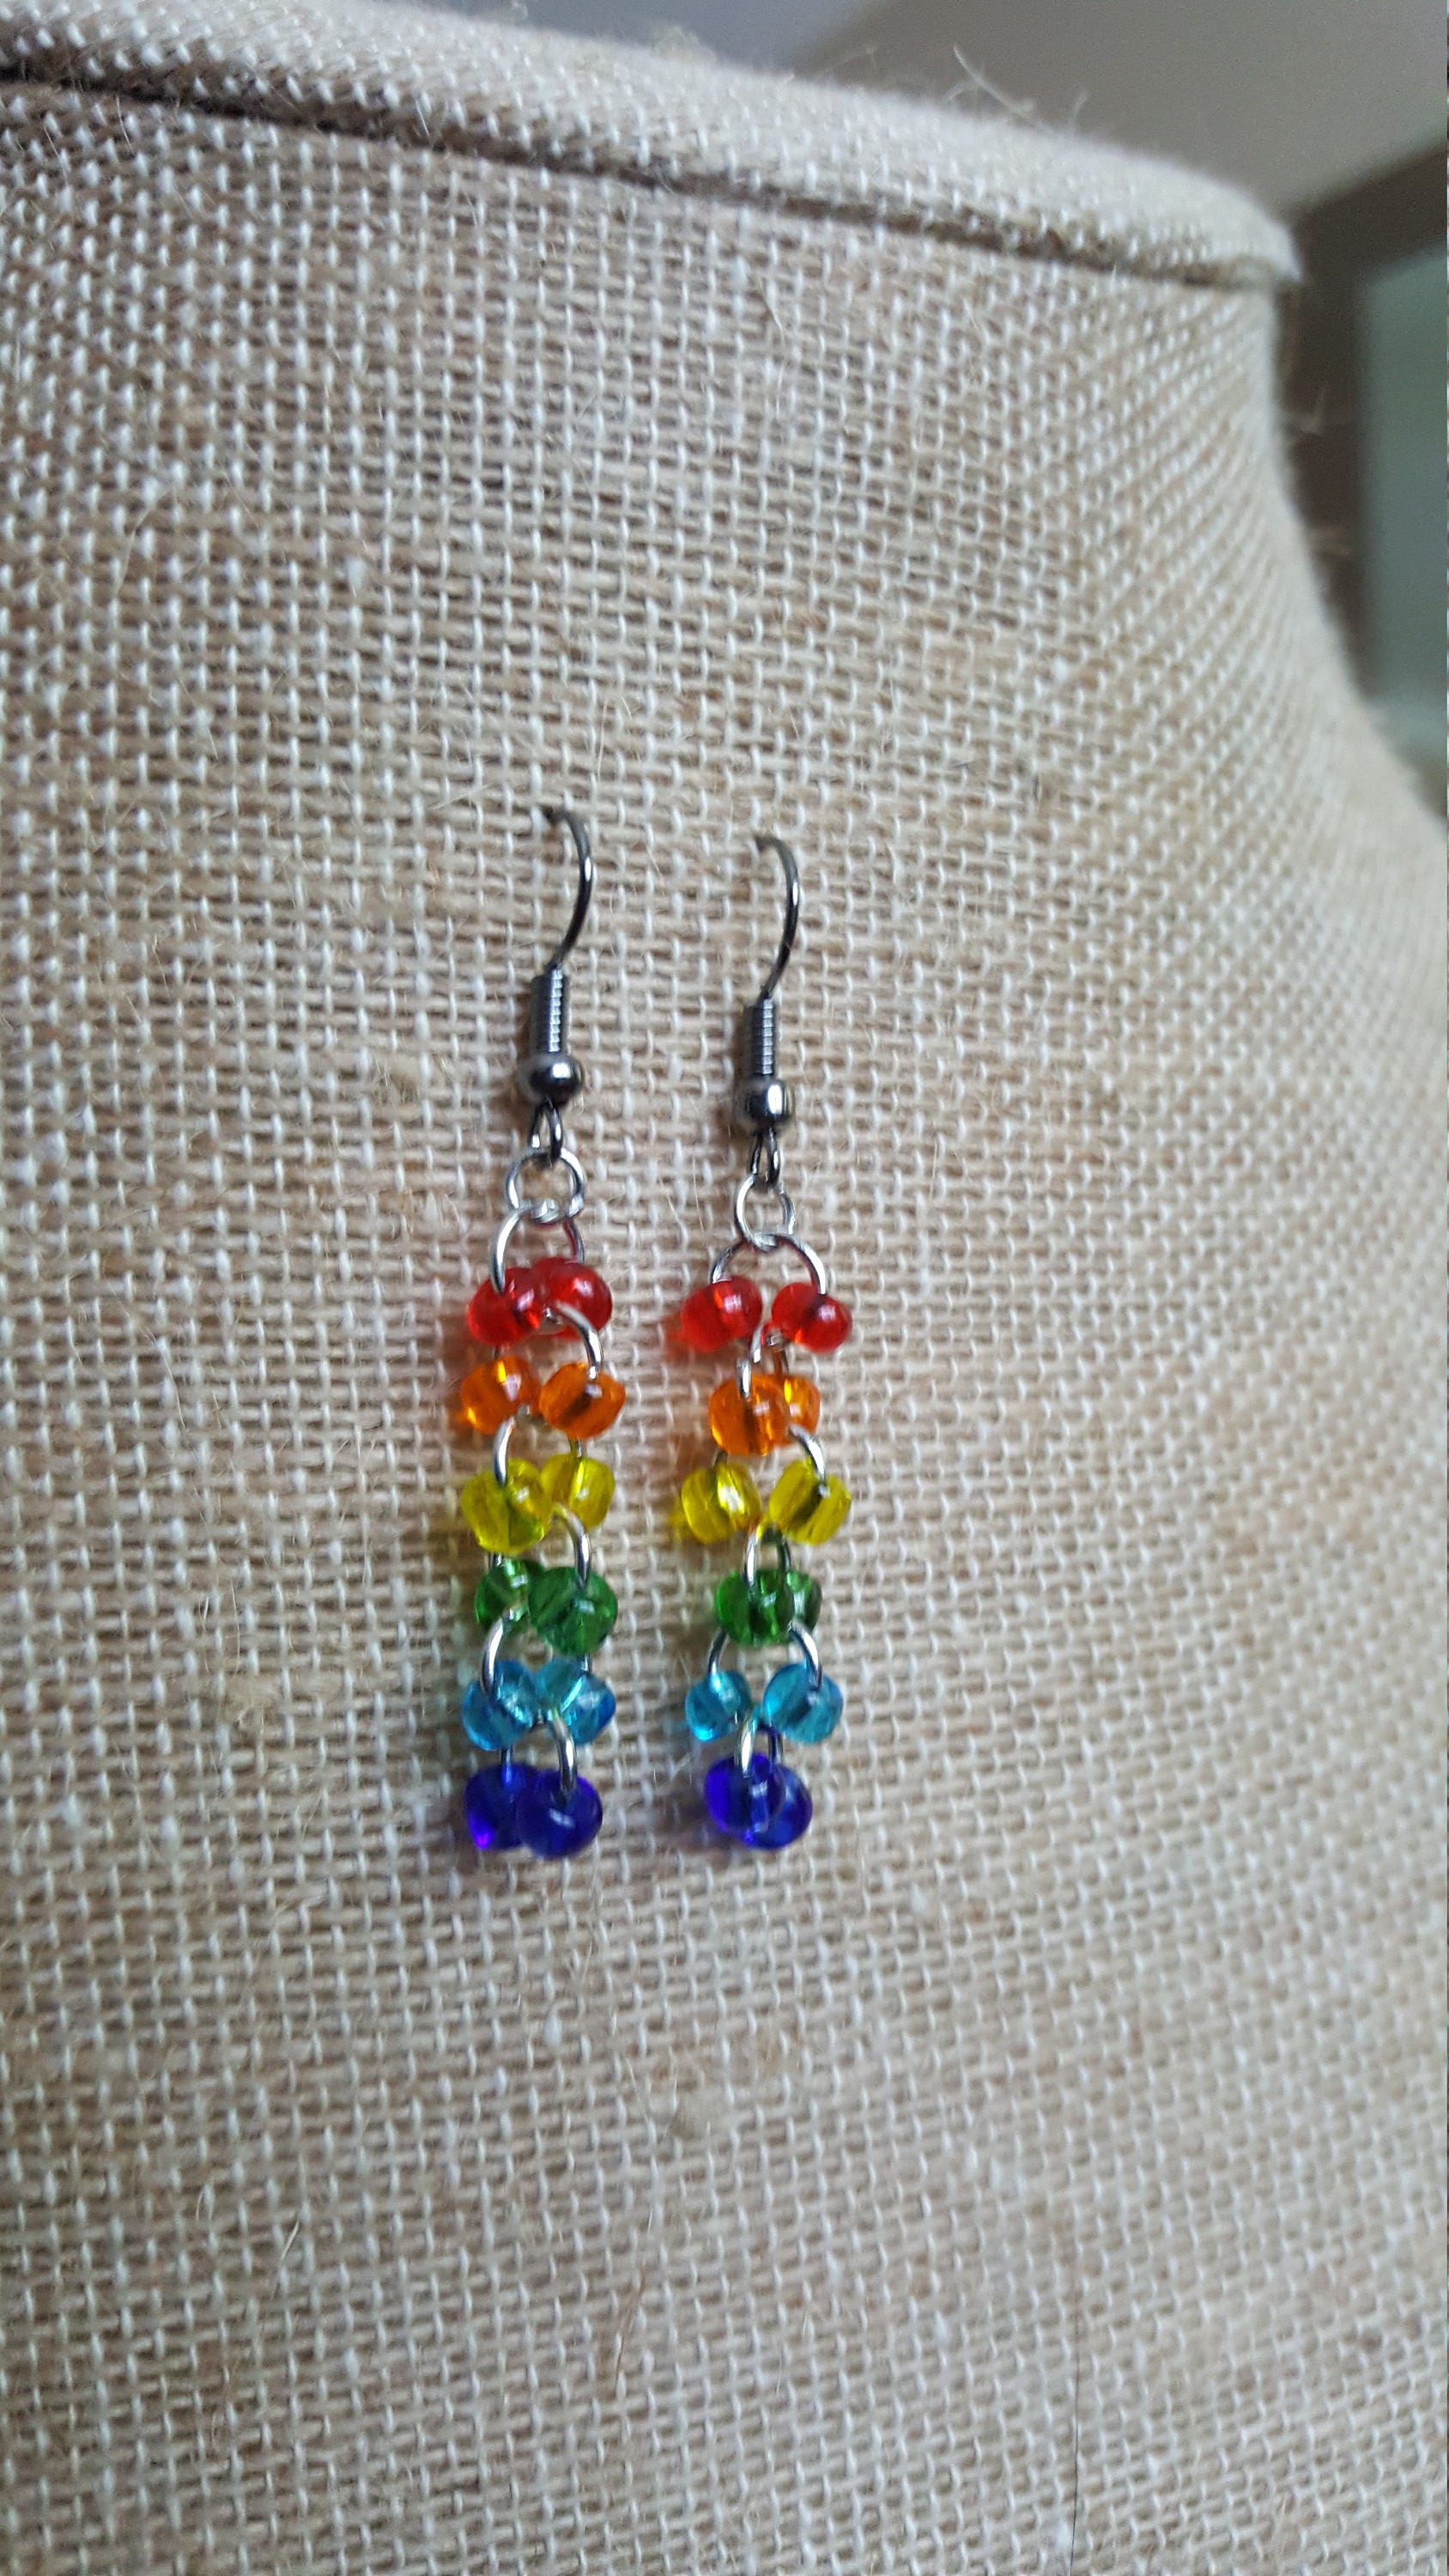 set pendant ring pin rainbow earrings necklace jewelry